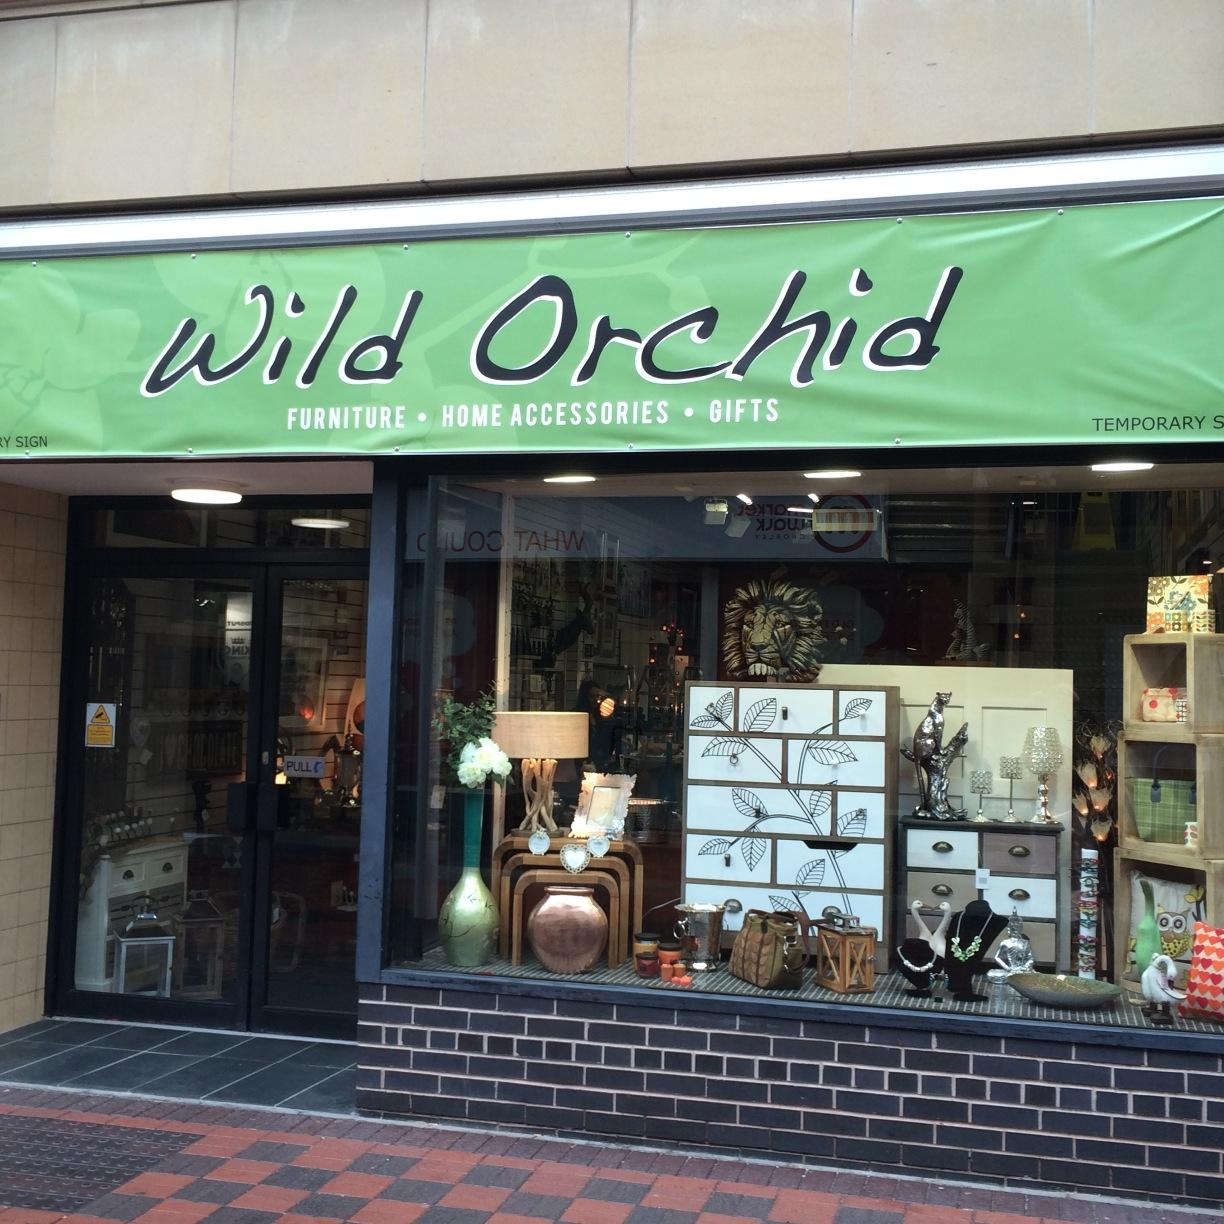 Wild orchid wildorchidley twitter for Wild orchid furniture